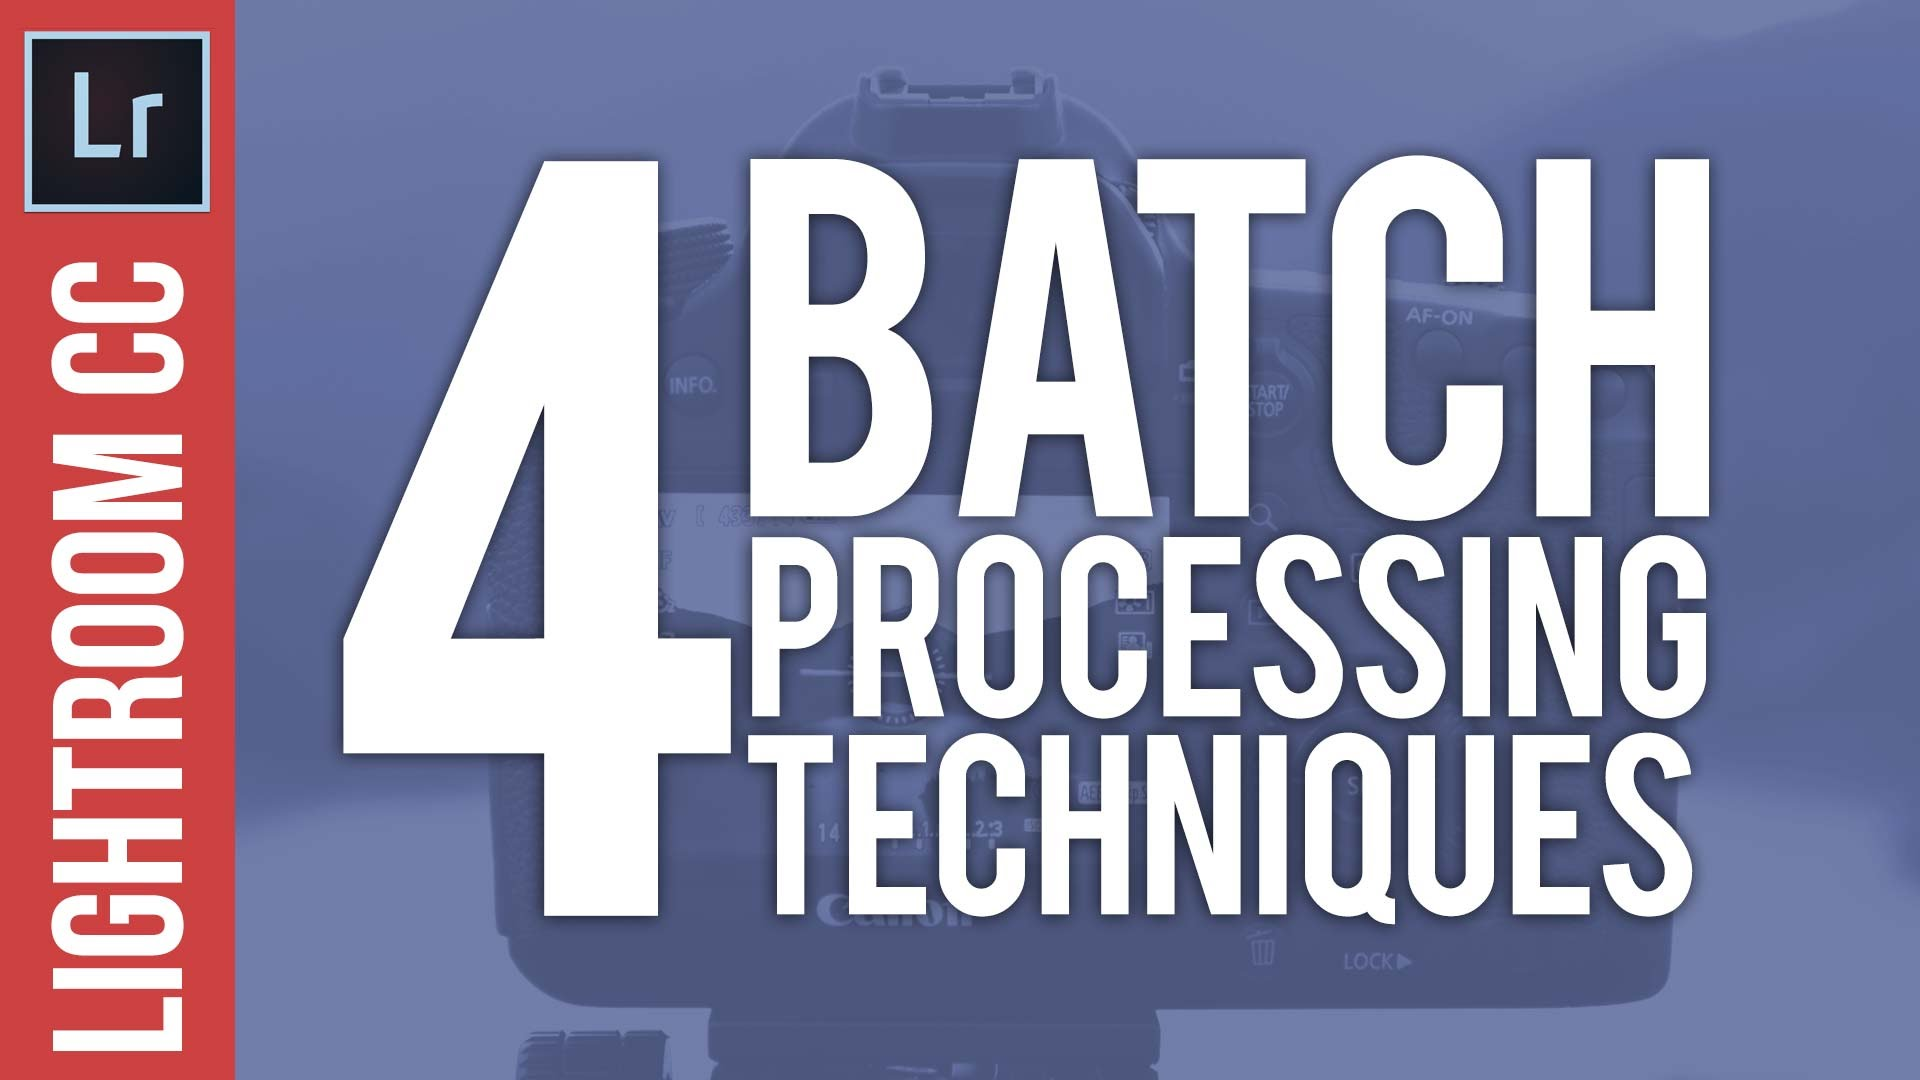 4 Batch Processing Techniques in Lightroom – Speed Up Your Workflow